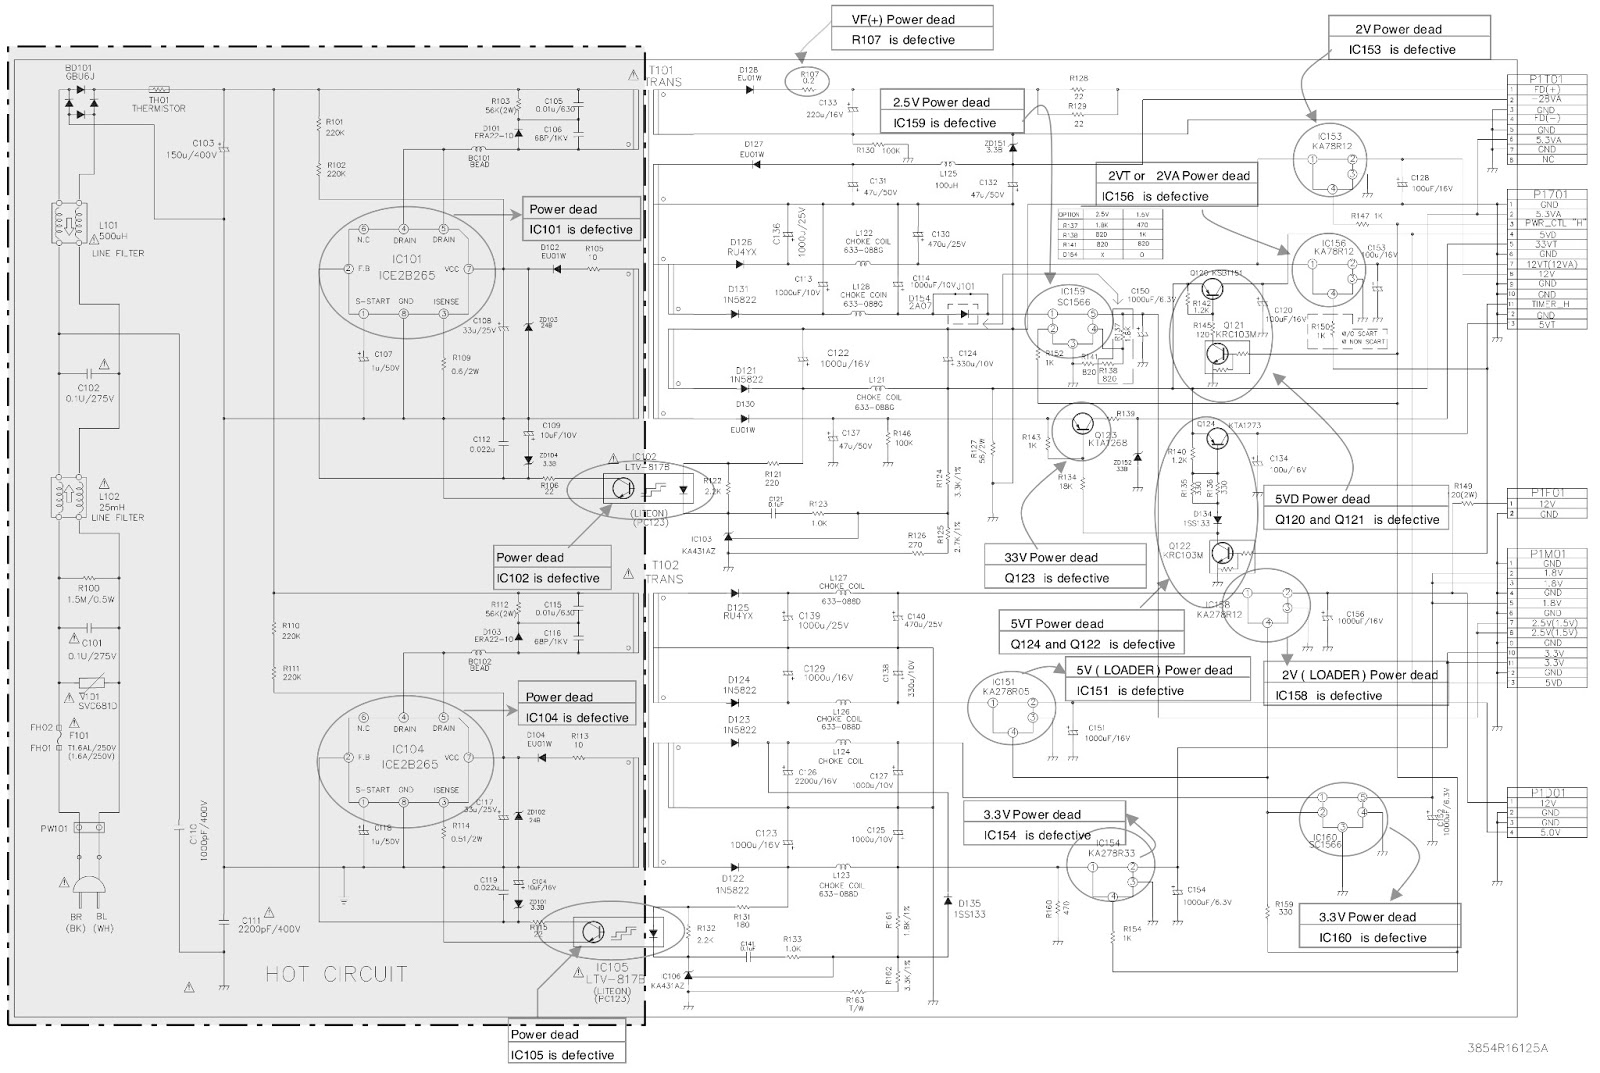 medium resolution of power supply schematic fault location defective components click on picture to enlarge